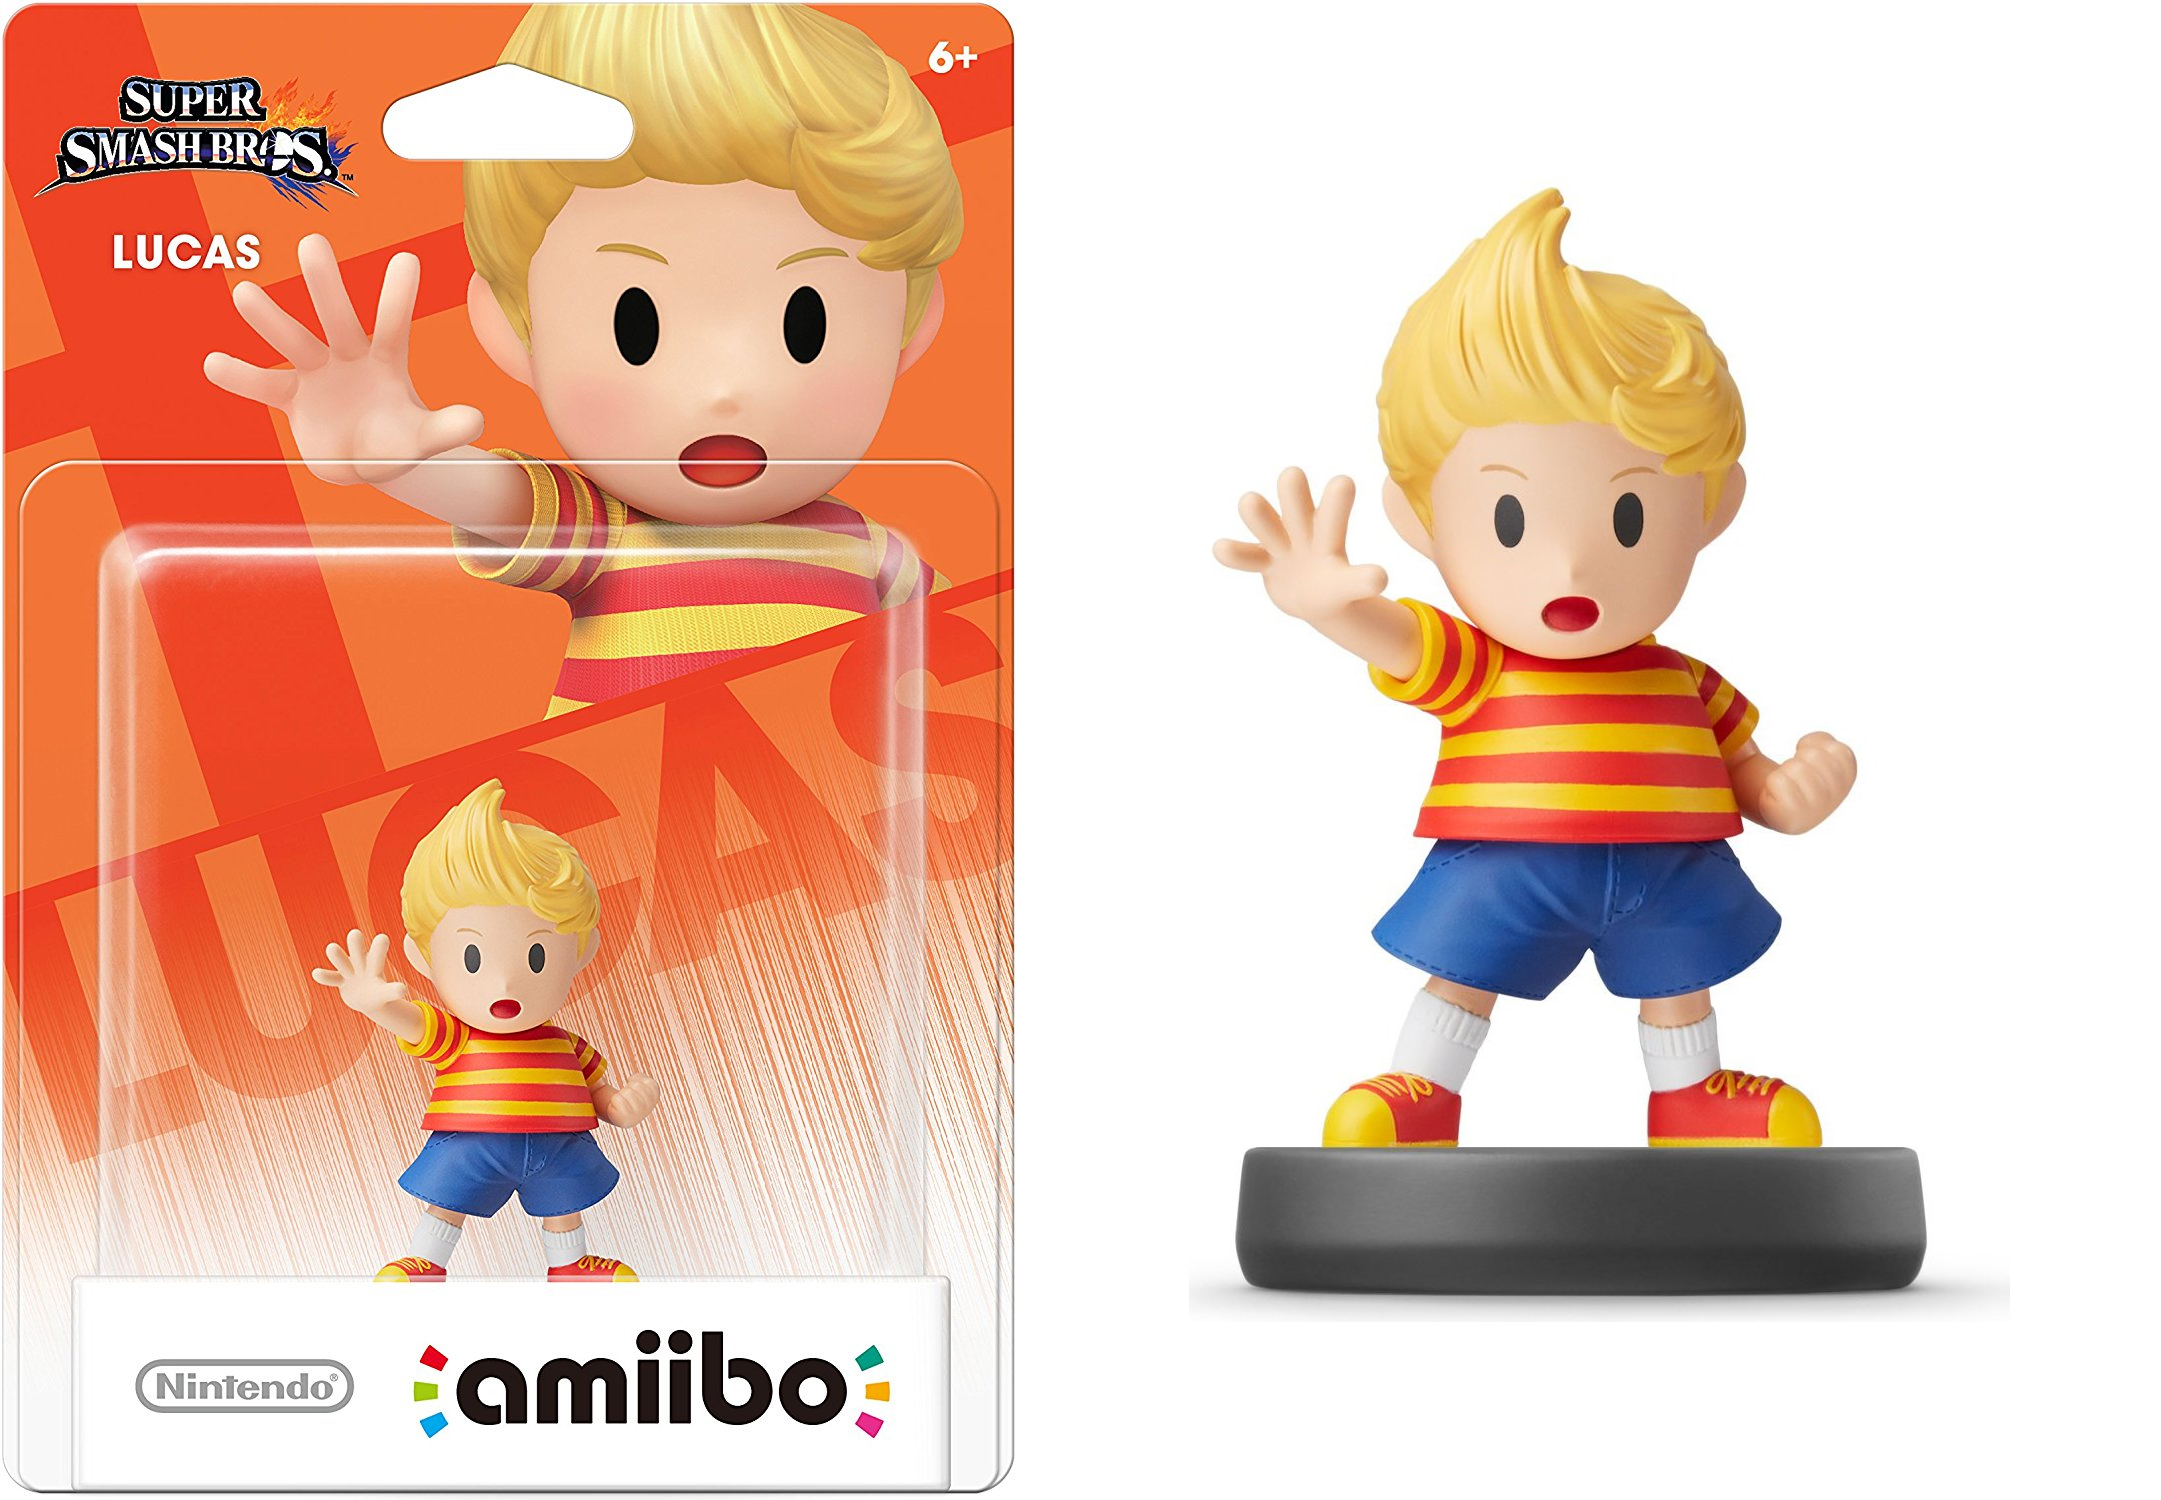 super-smash-bros-gift-ideas-lucas-amiibo-super-smash-bros-series